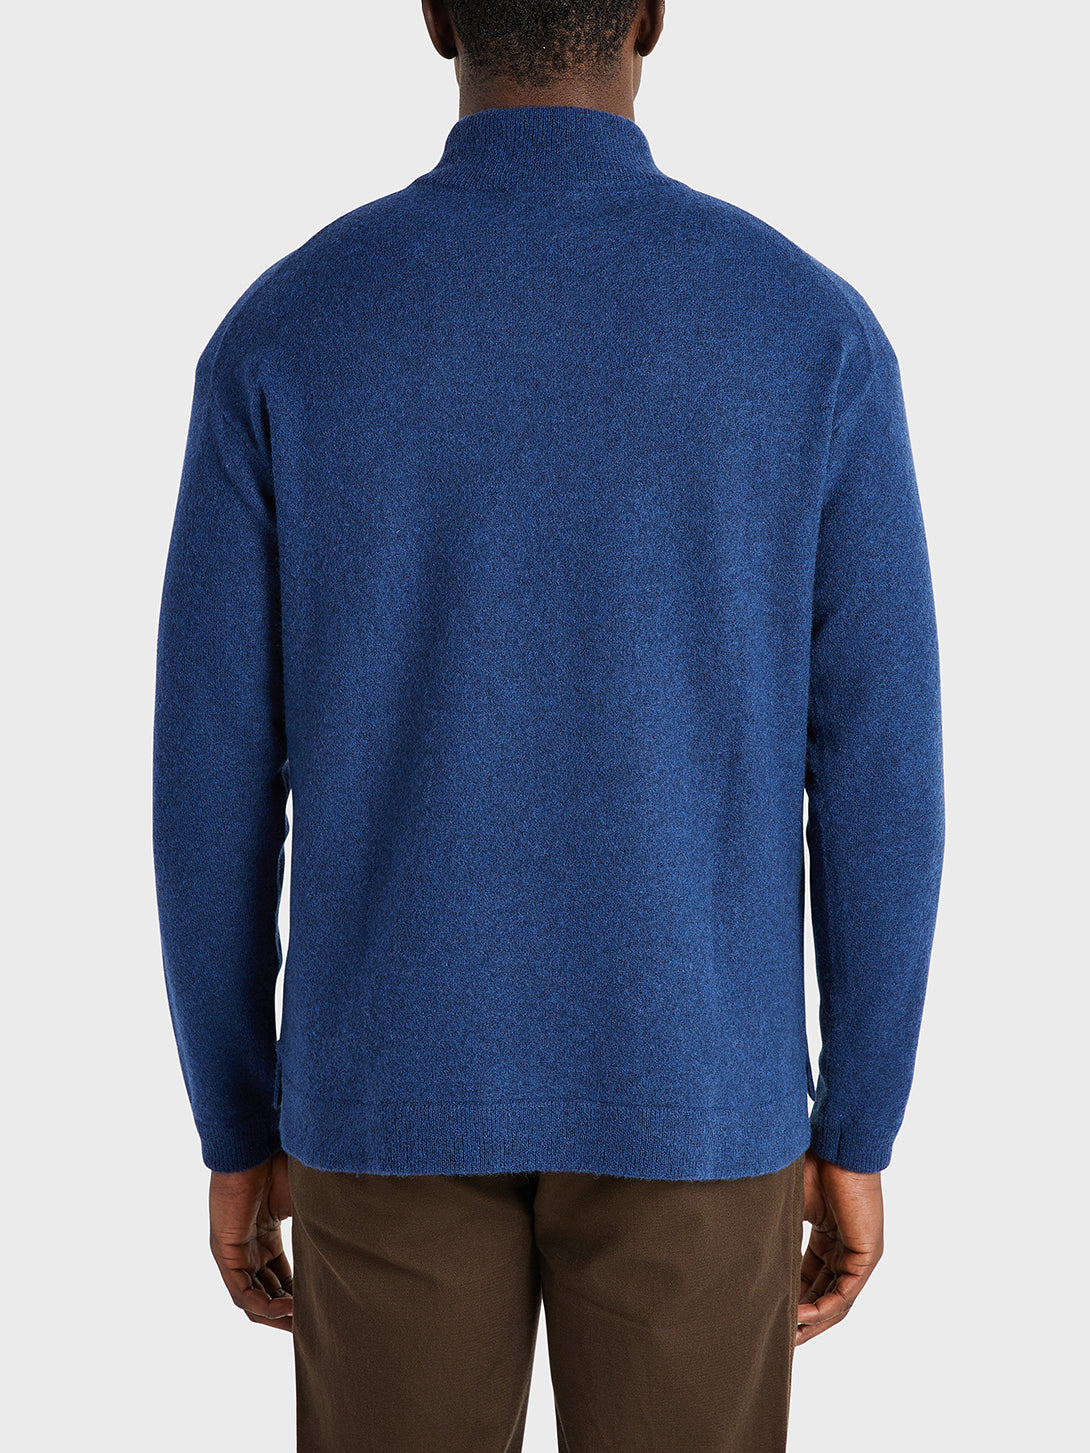 ONS Clothing Men's sweater in COBALT BLUE black friday deals